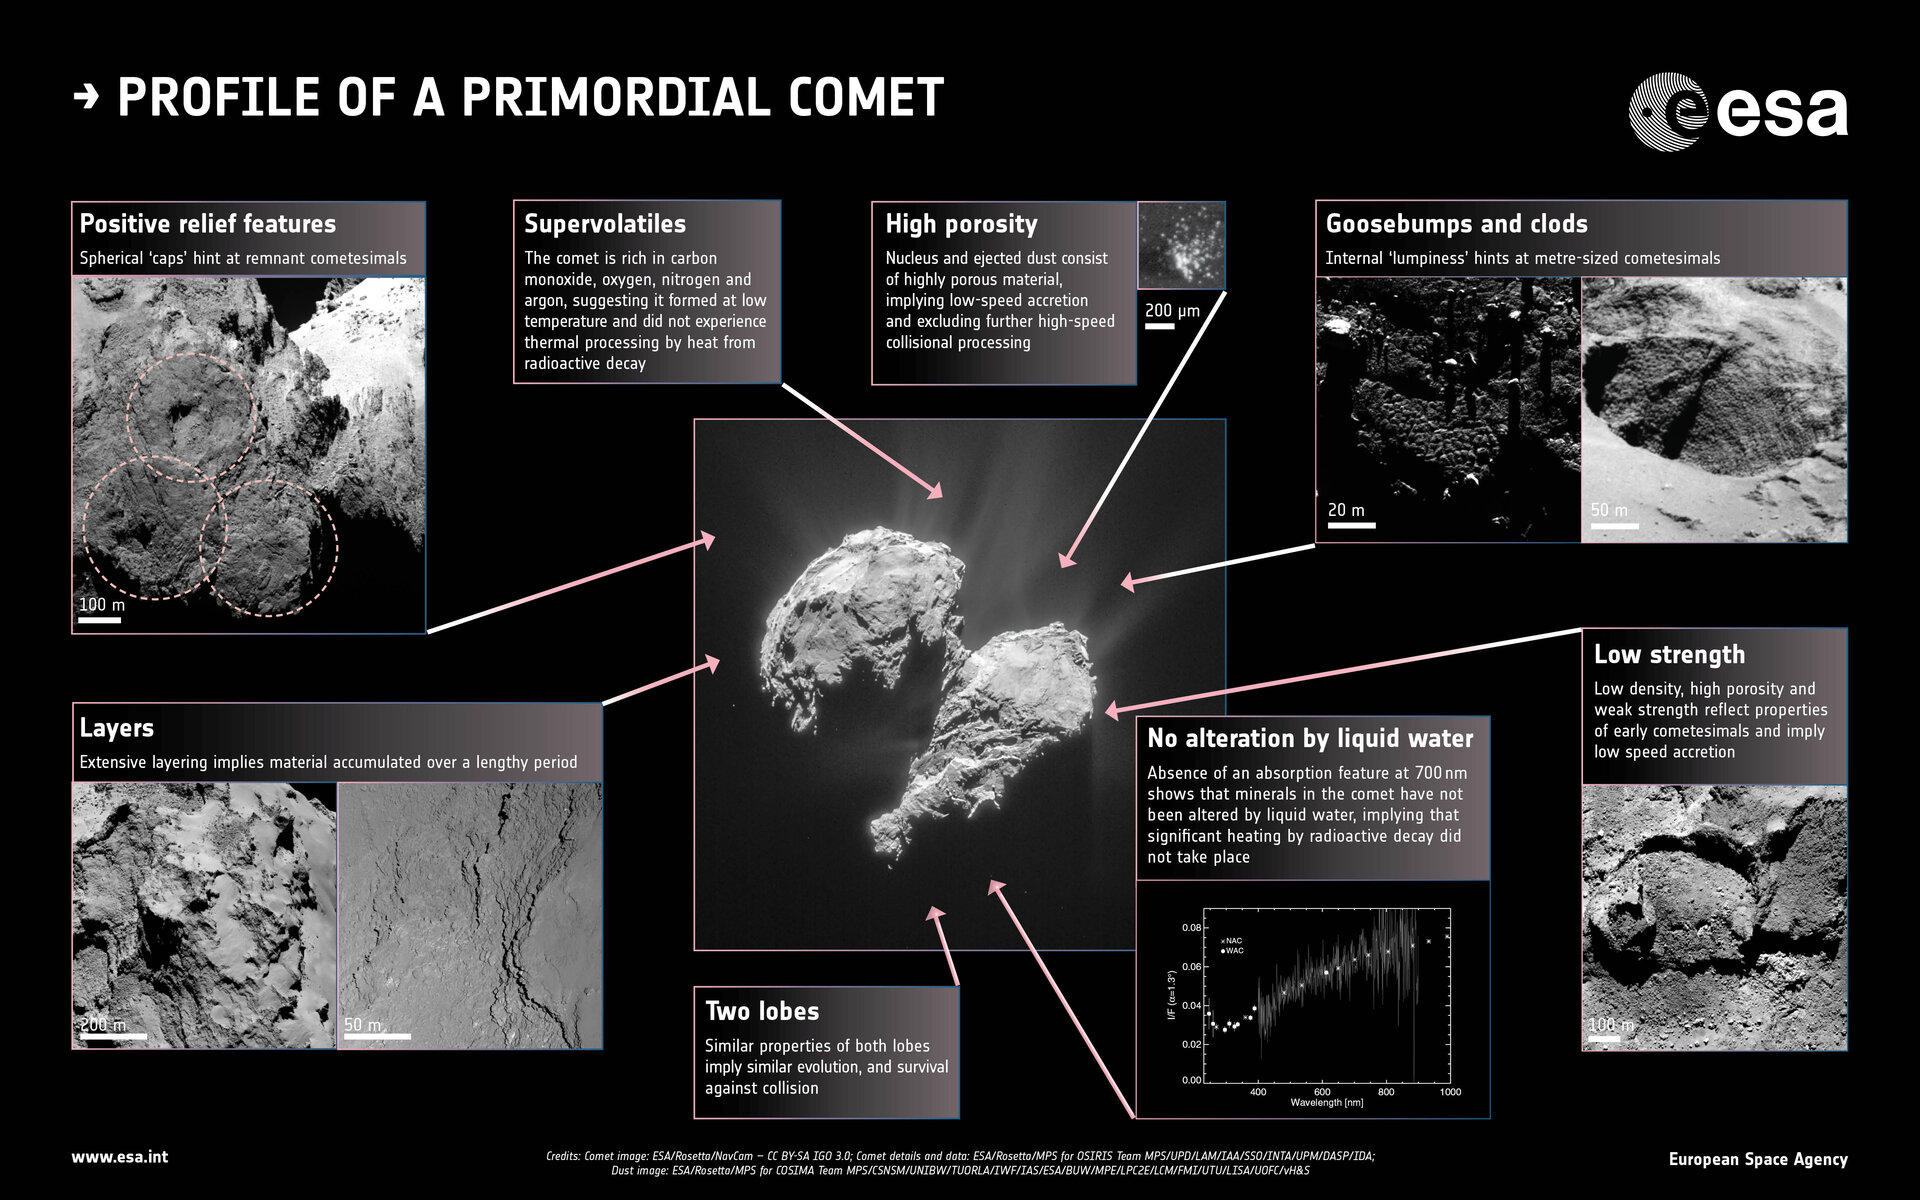 Profile of a primordial comet